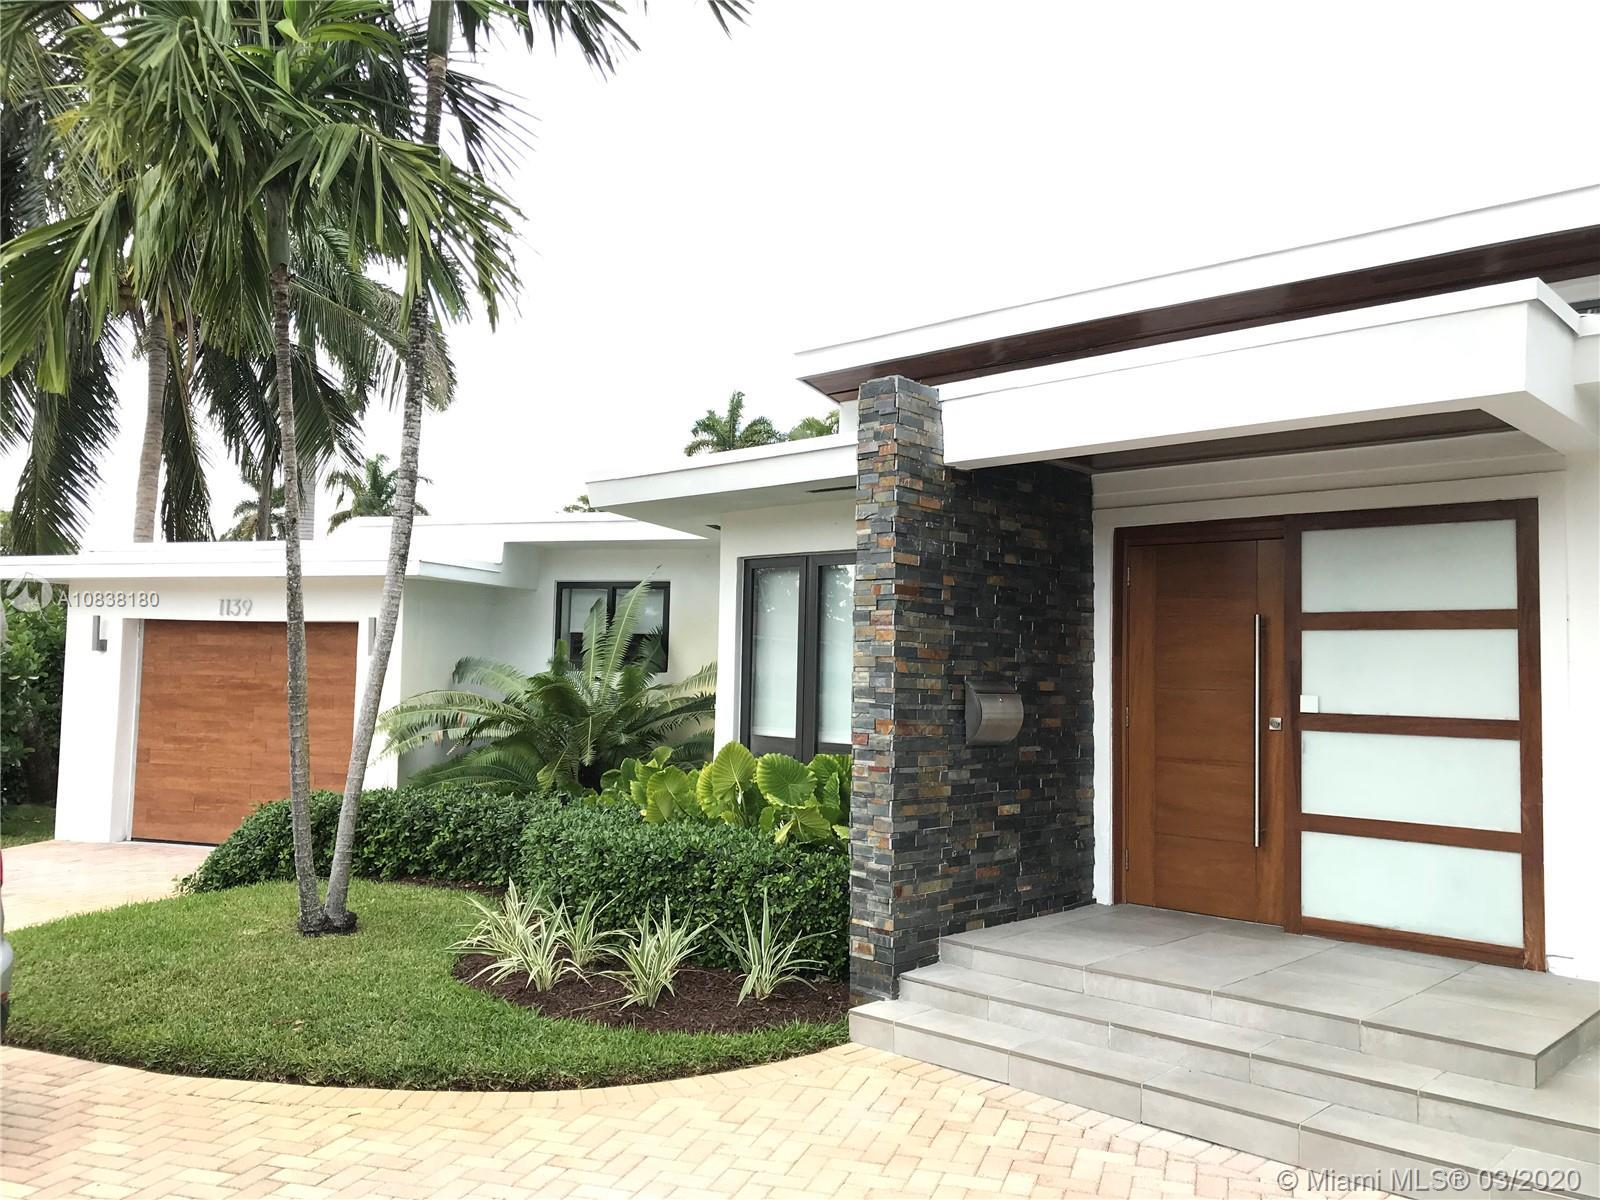 MID CENTURY MODERN GEM IN MIAMI SHORES. A luminous and spacious home with 2450 SF of total living sp